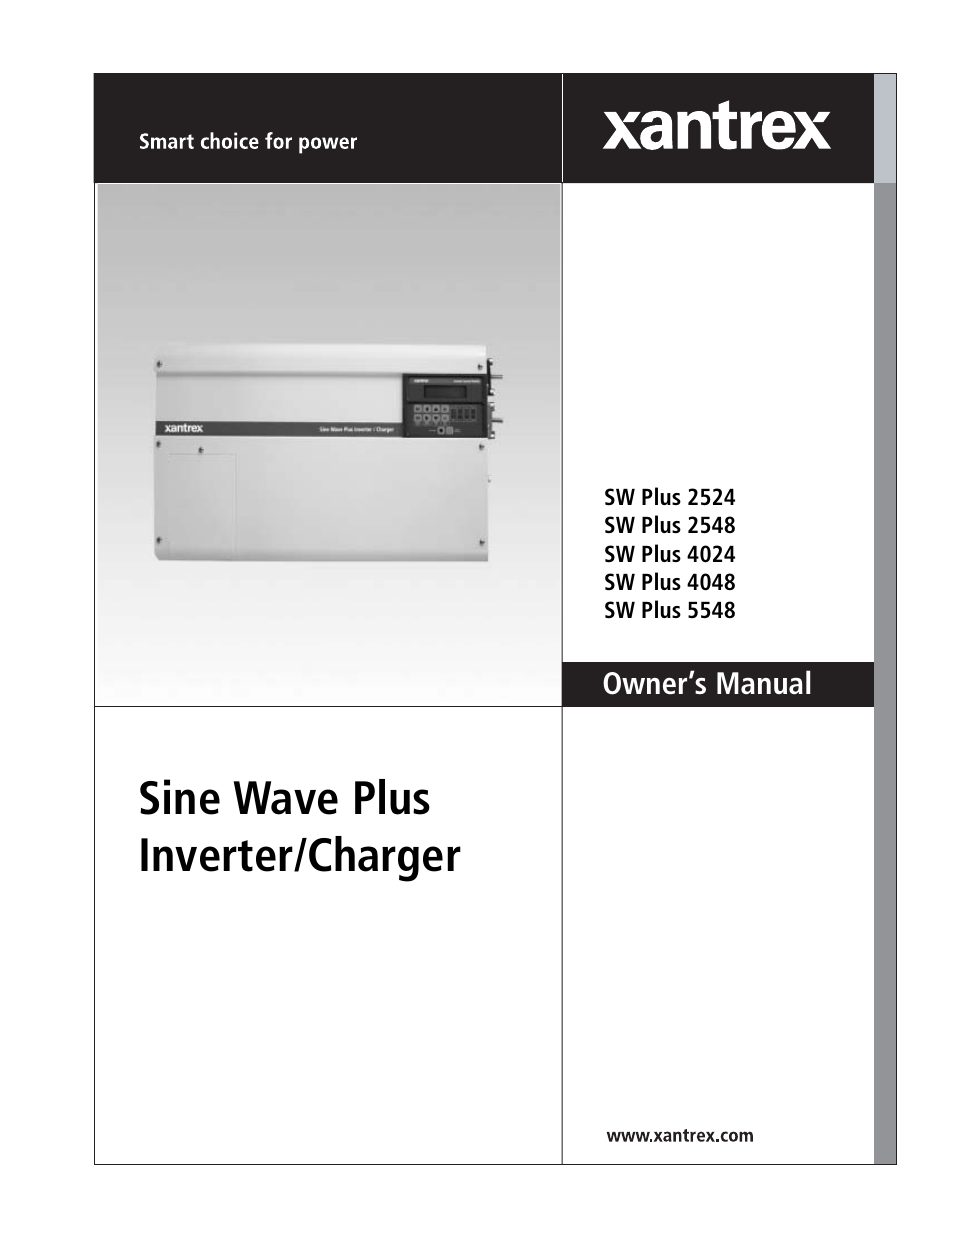 xantrex technology sw plus 4024 user manual 344 pages also for rh manualsdir com Xantrex Inverter Charger Xantrex Inverters